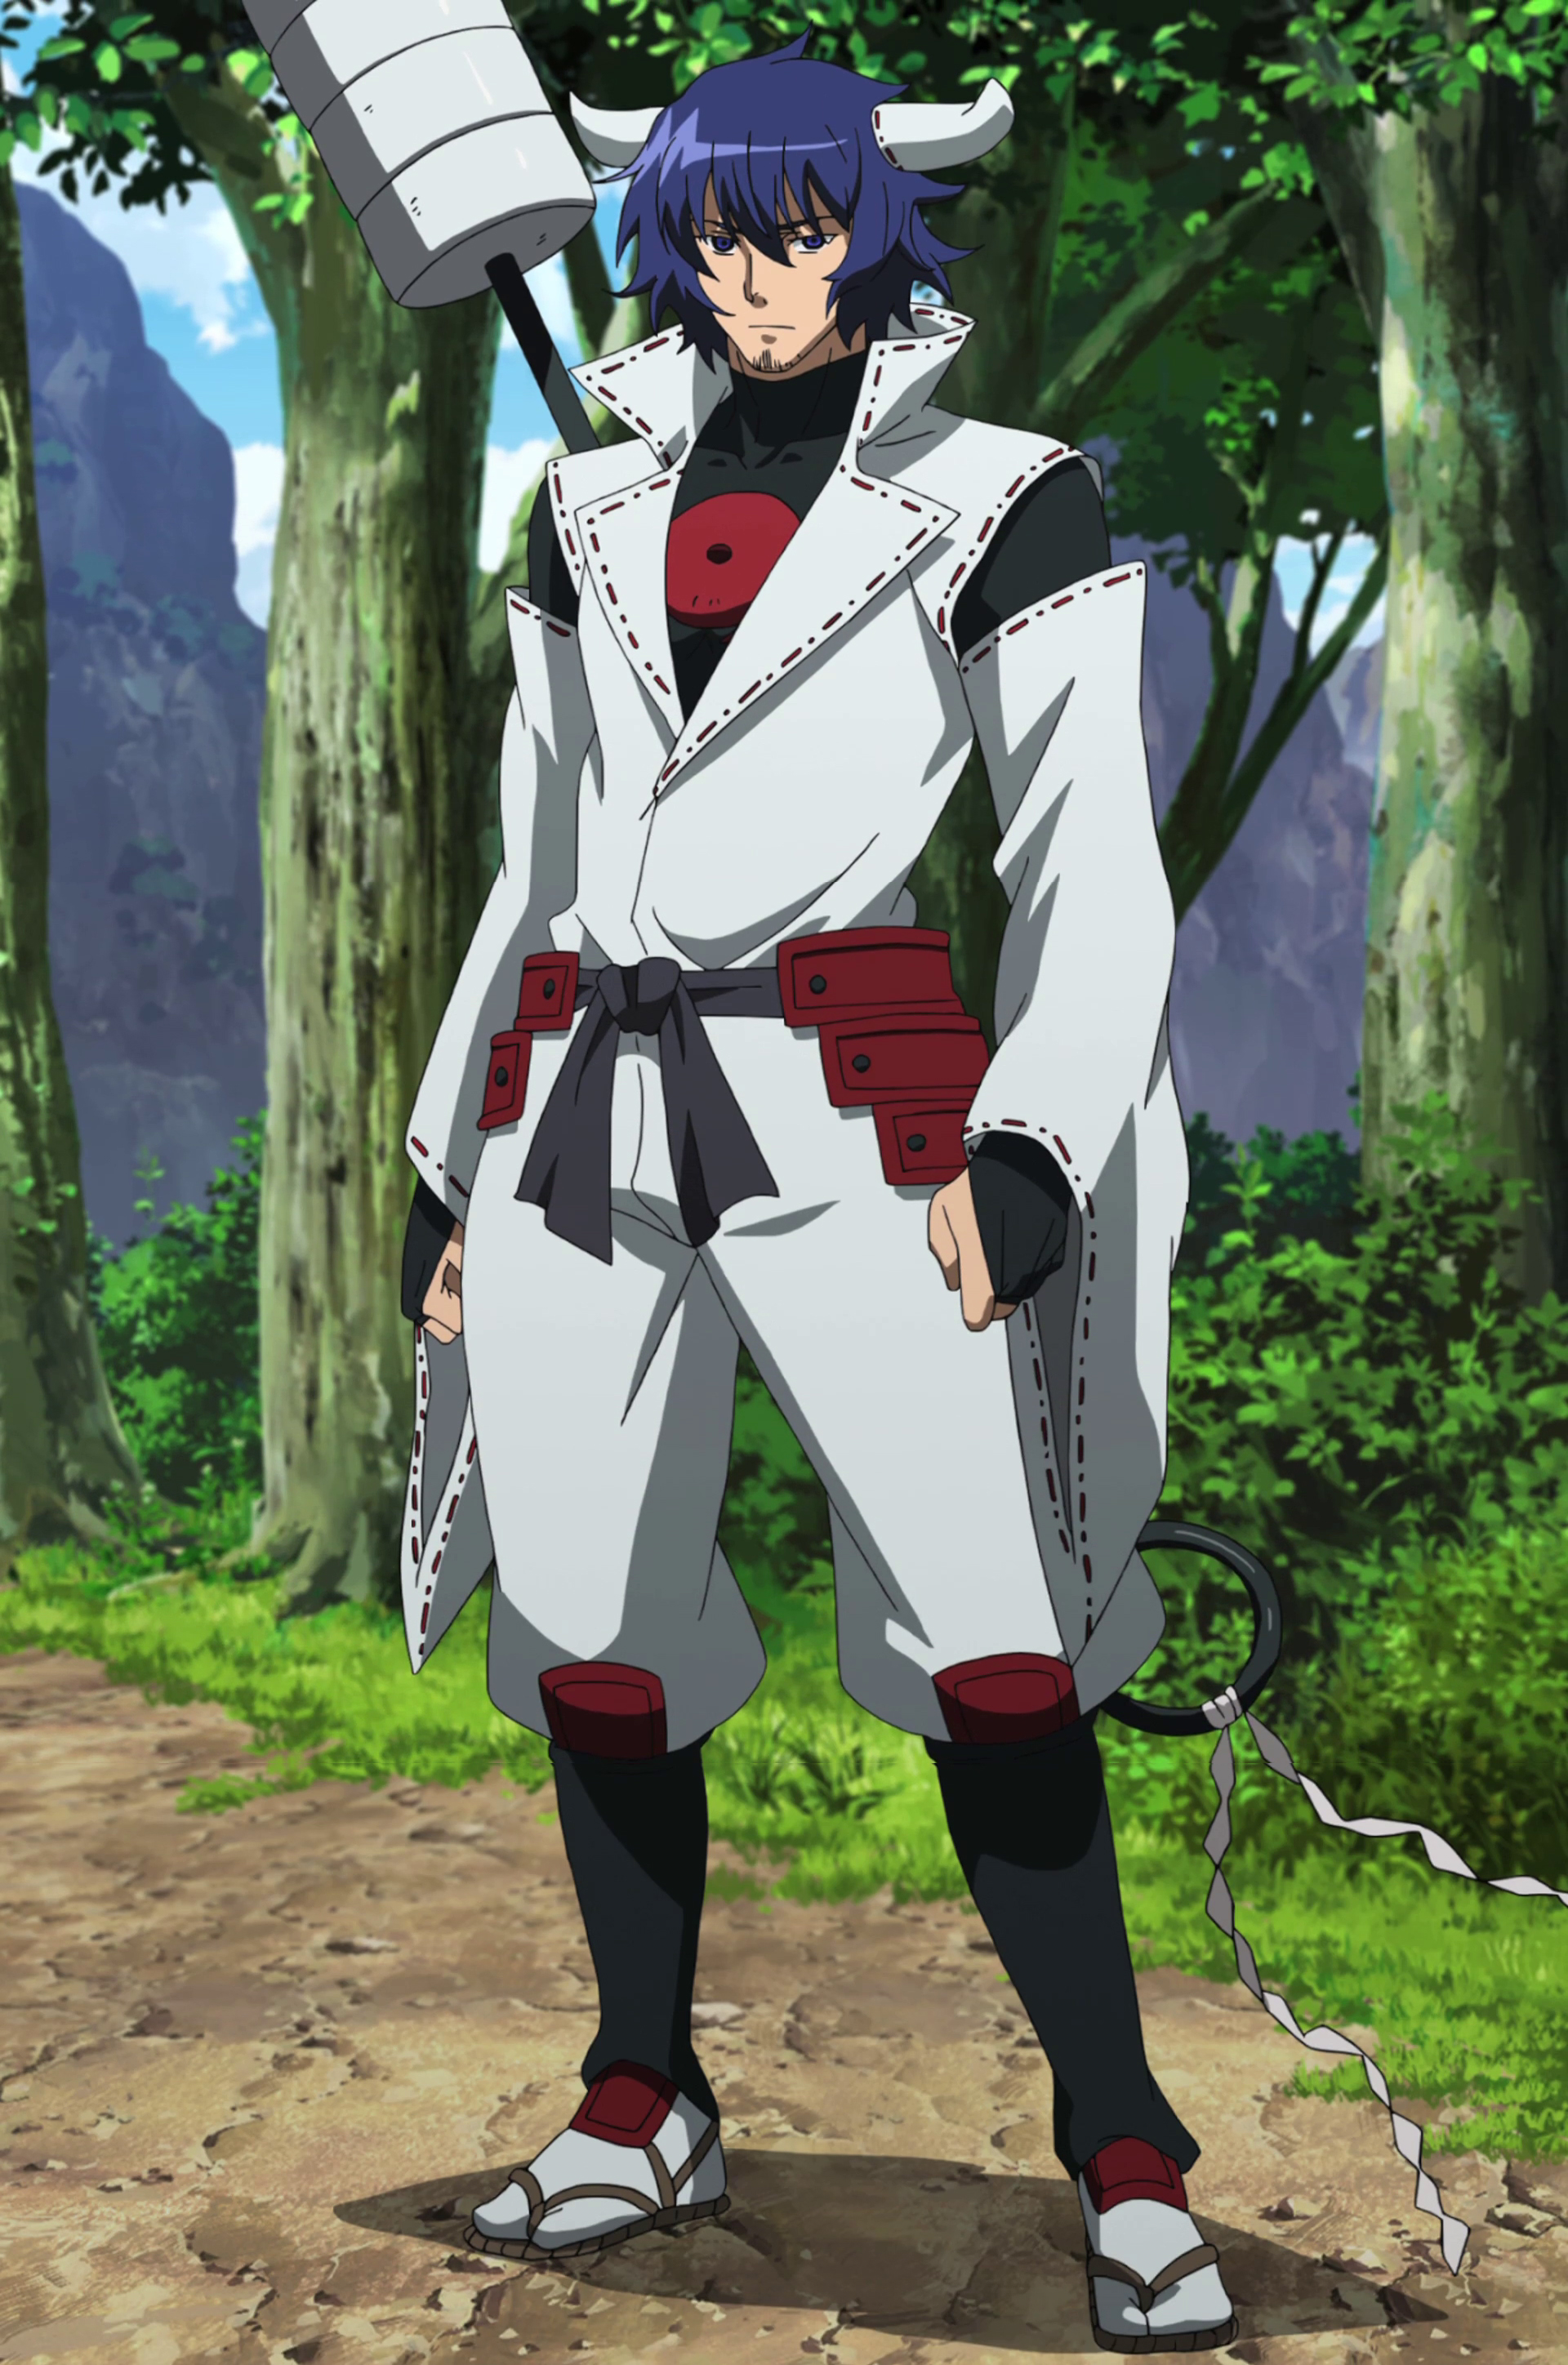 Red White Black Yellow (RWBY) RP Susanoo_Full_Body_View